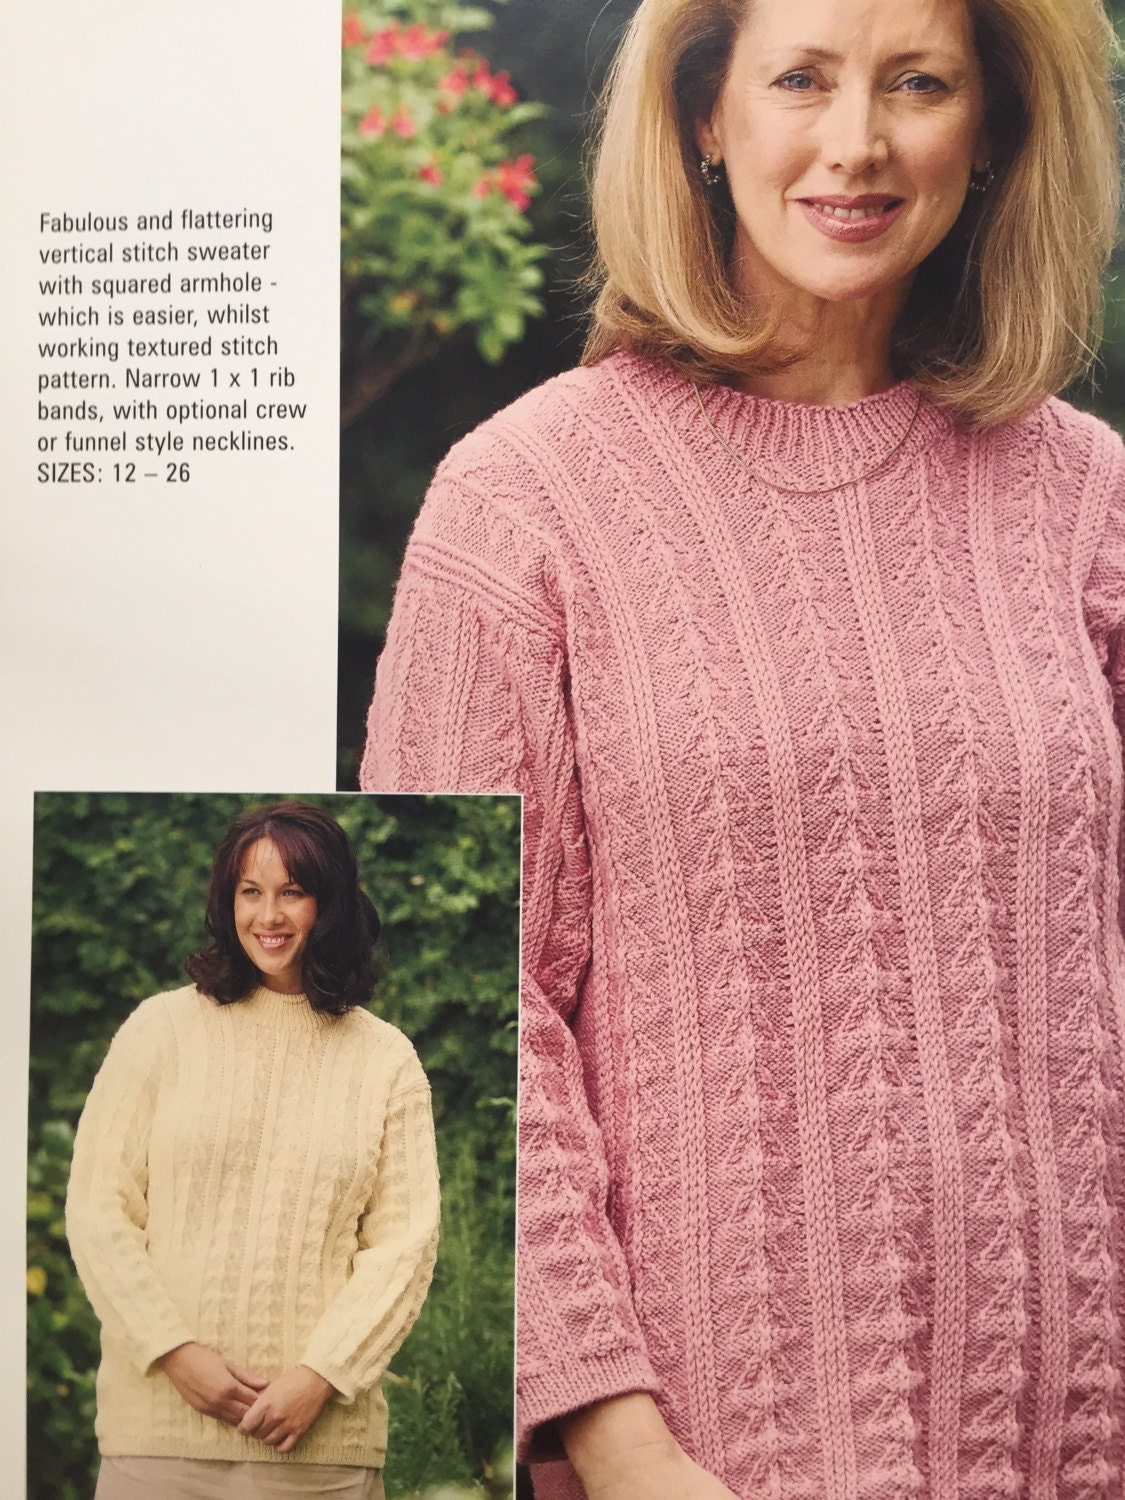 Patons ladies knitting patterns books large plus size 12 26 patons ladies knitting patterns books large plus size 12 26 jumpers sweaters xxl plus size patterns xxxl knits bankloansurffo Gallery